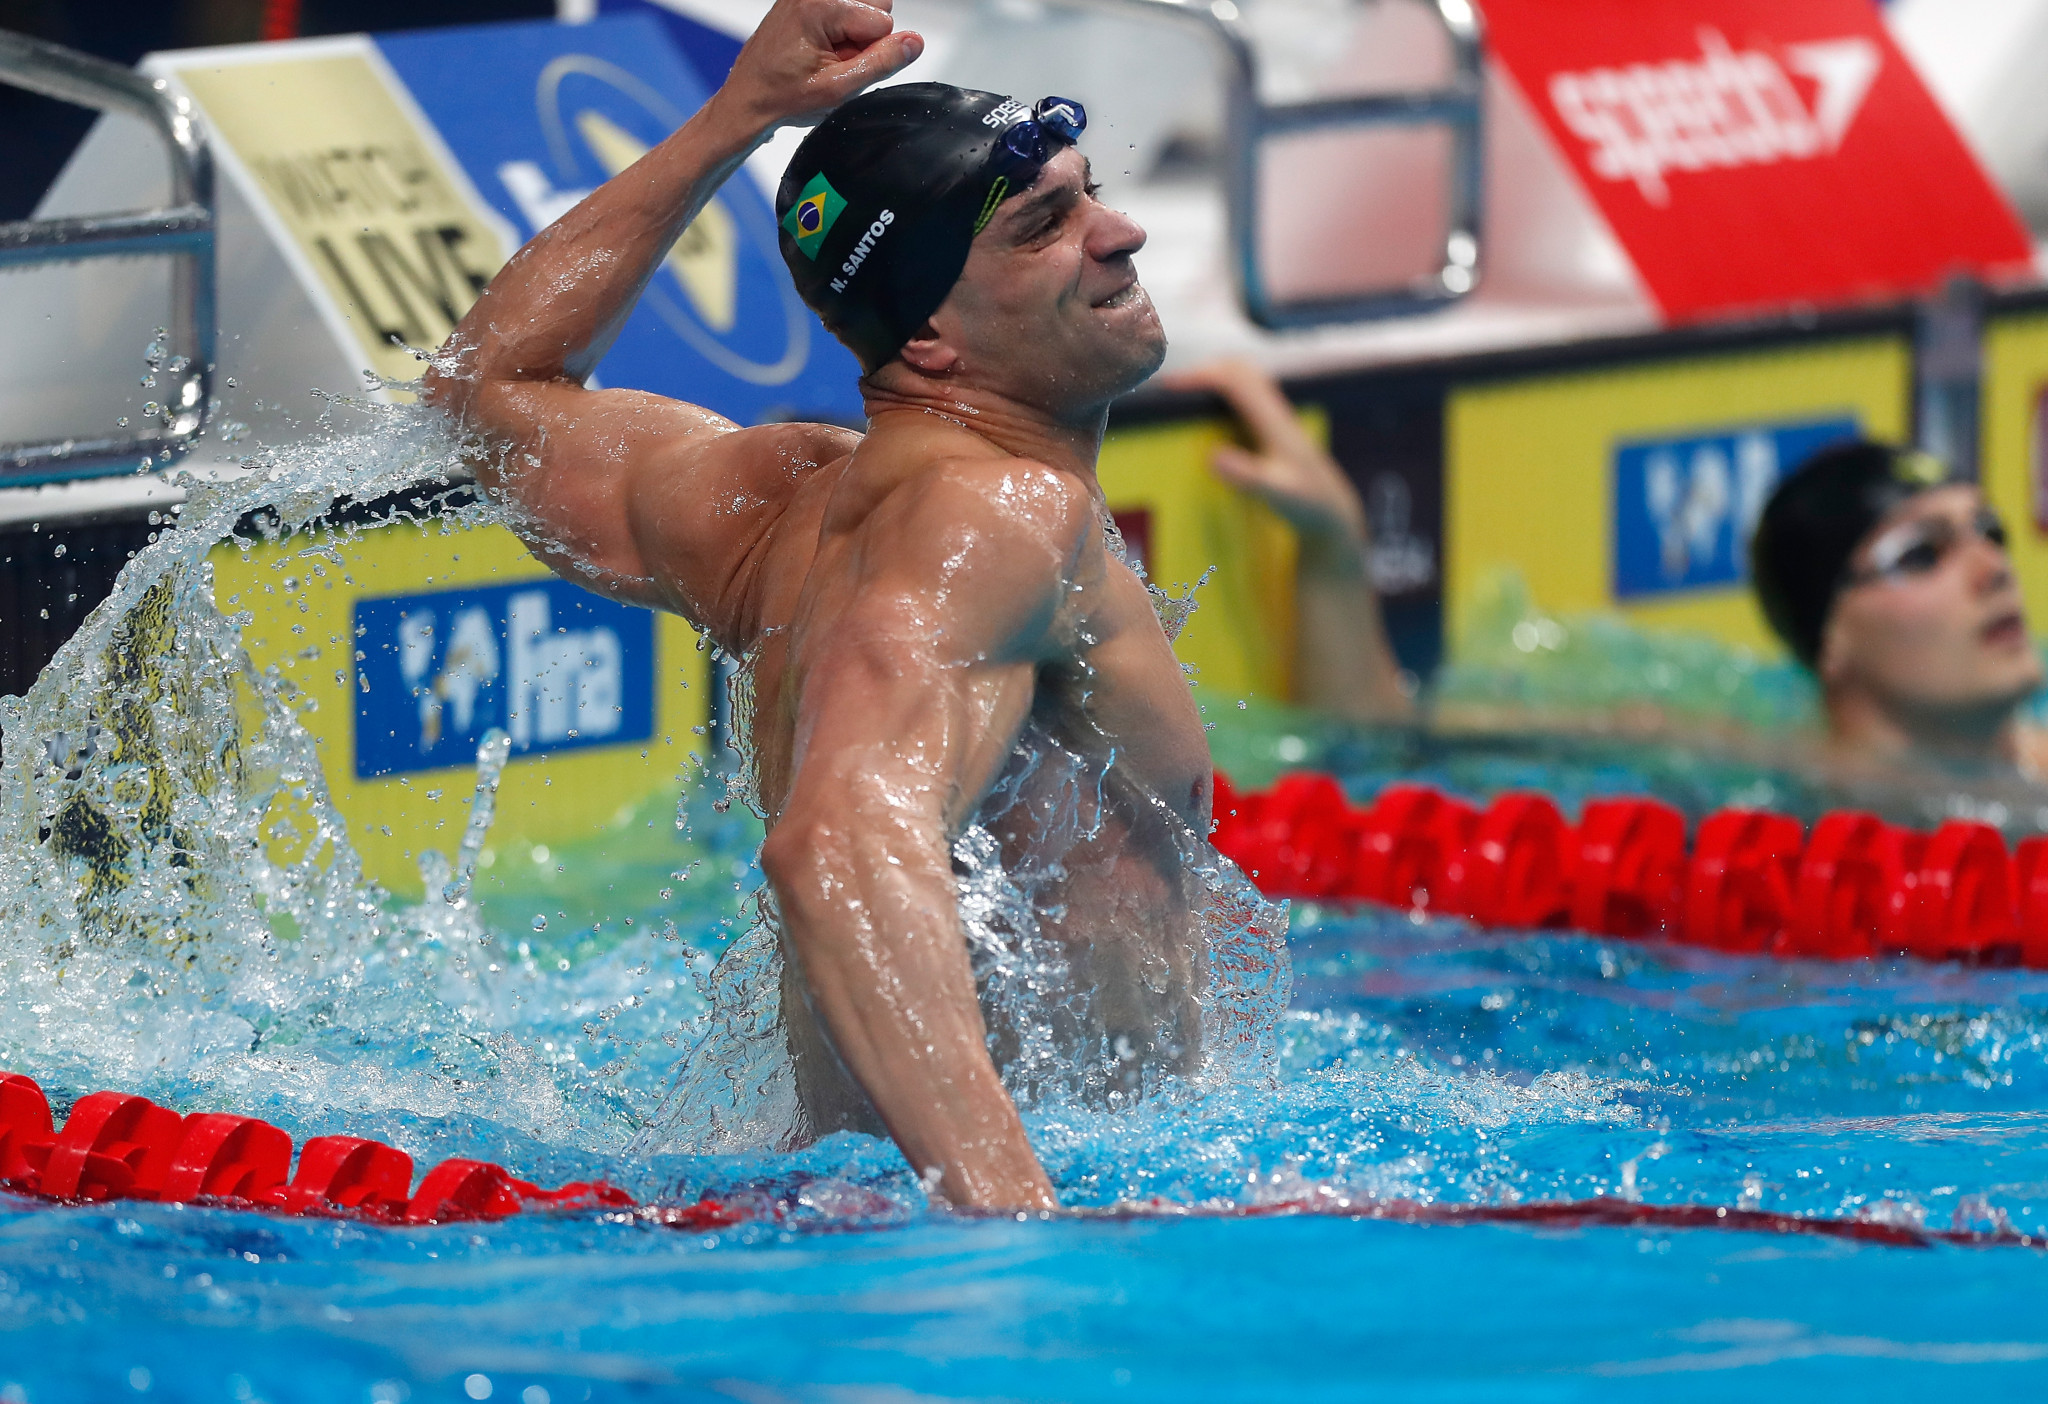 Brazil's Nicholas Santos celebrates breaking the  world record for the 50m men's fly race at the Fina Swimming World Cup in Budapest ©FINA